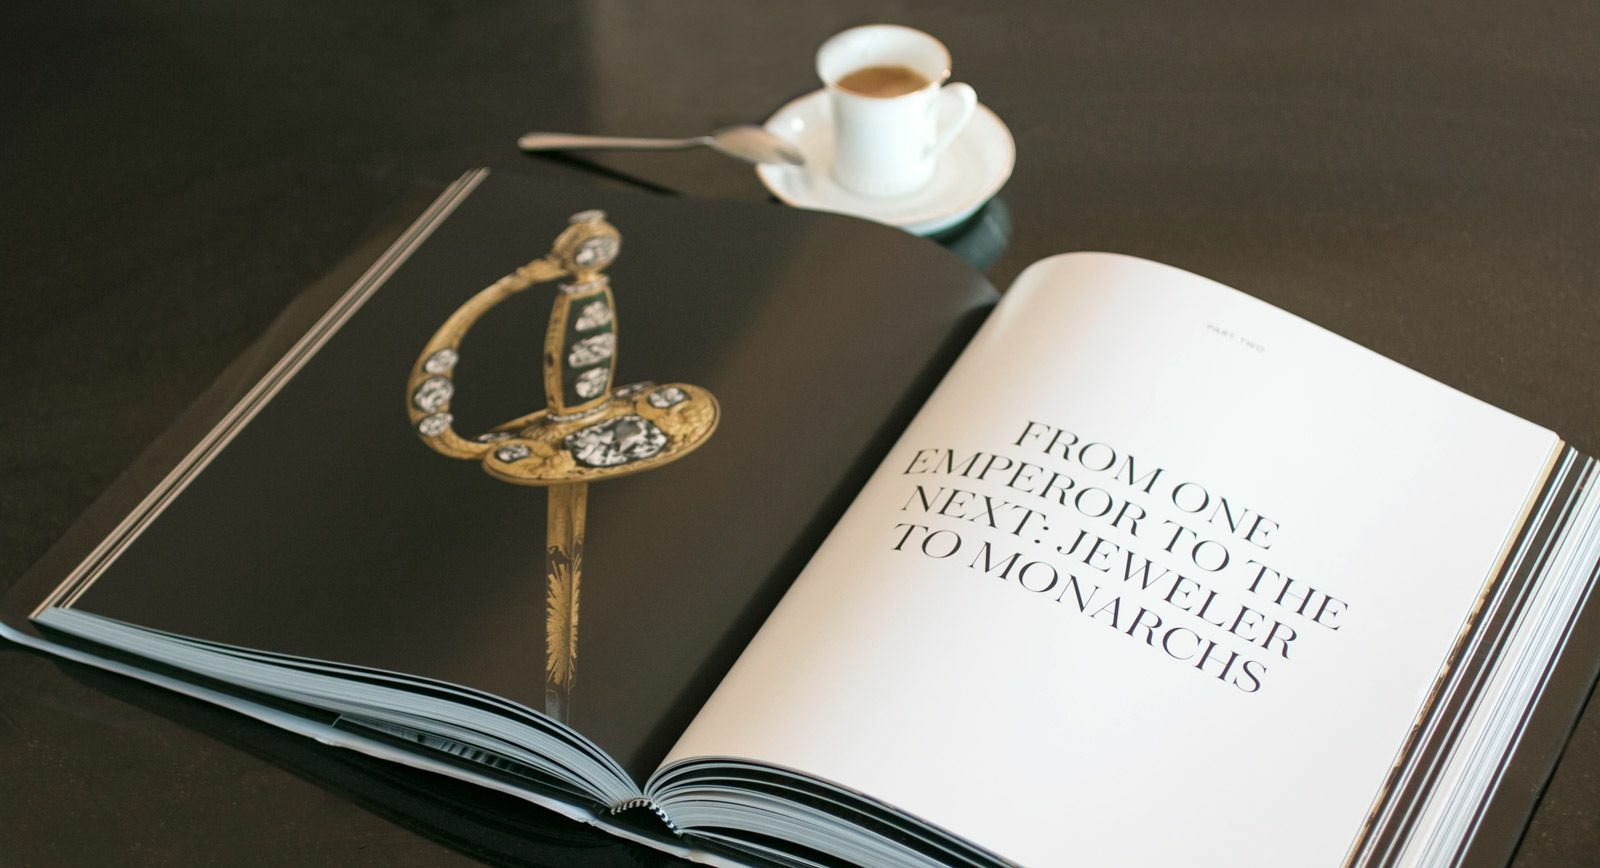 Chaumet: Parisian Jeweller since 1780 book by Henri Loyrett